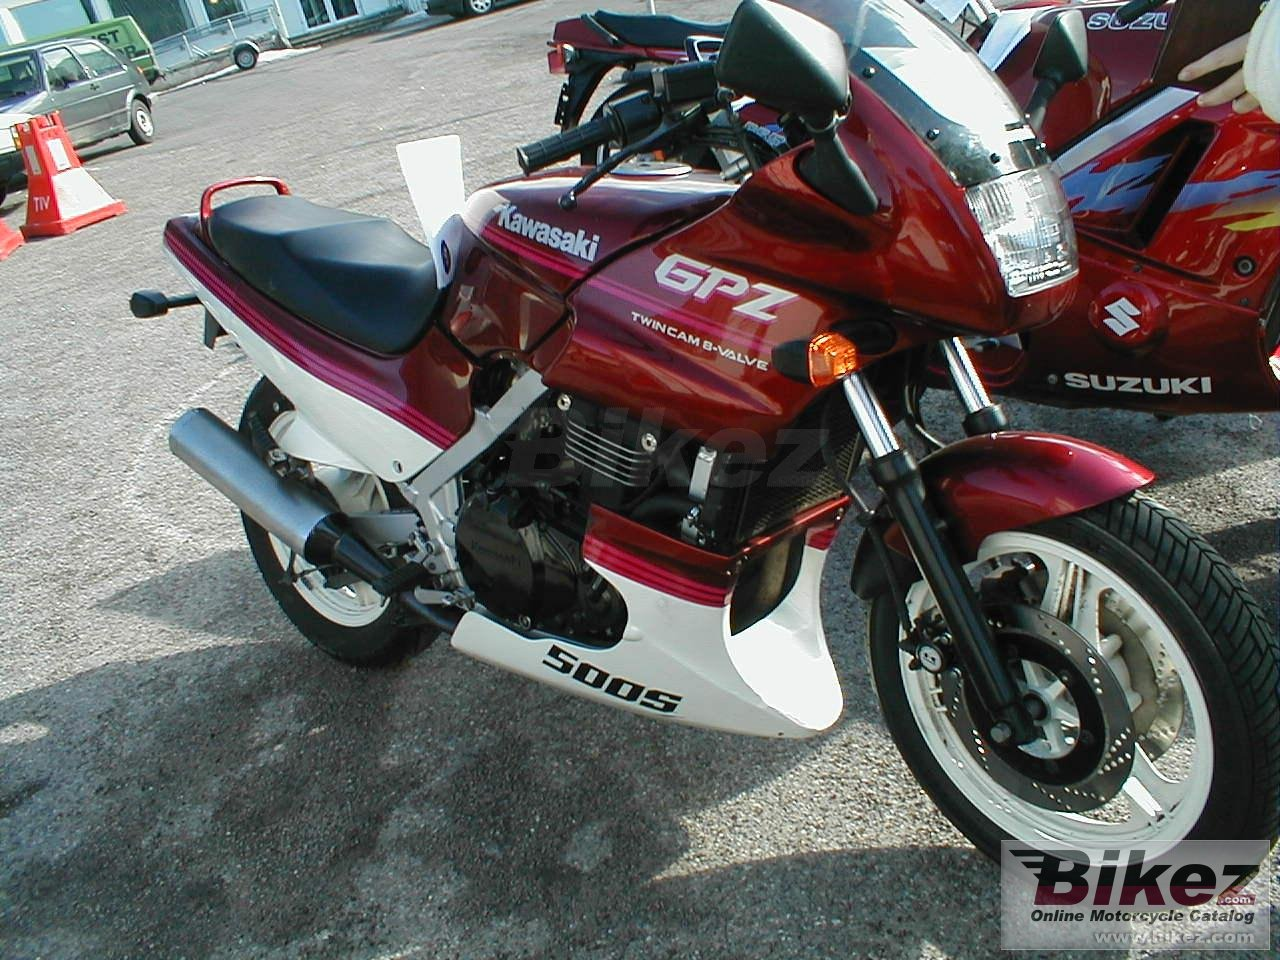 Kawasaki GPZ 500 S (reduced effect #2)